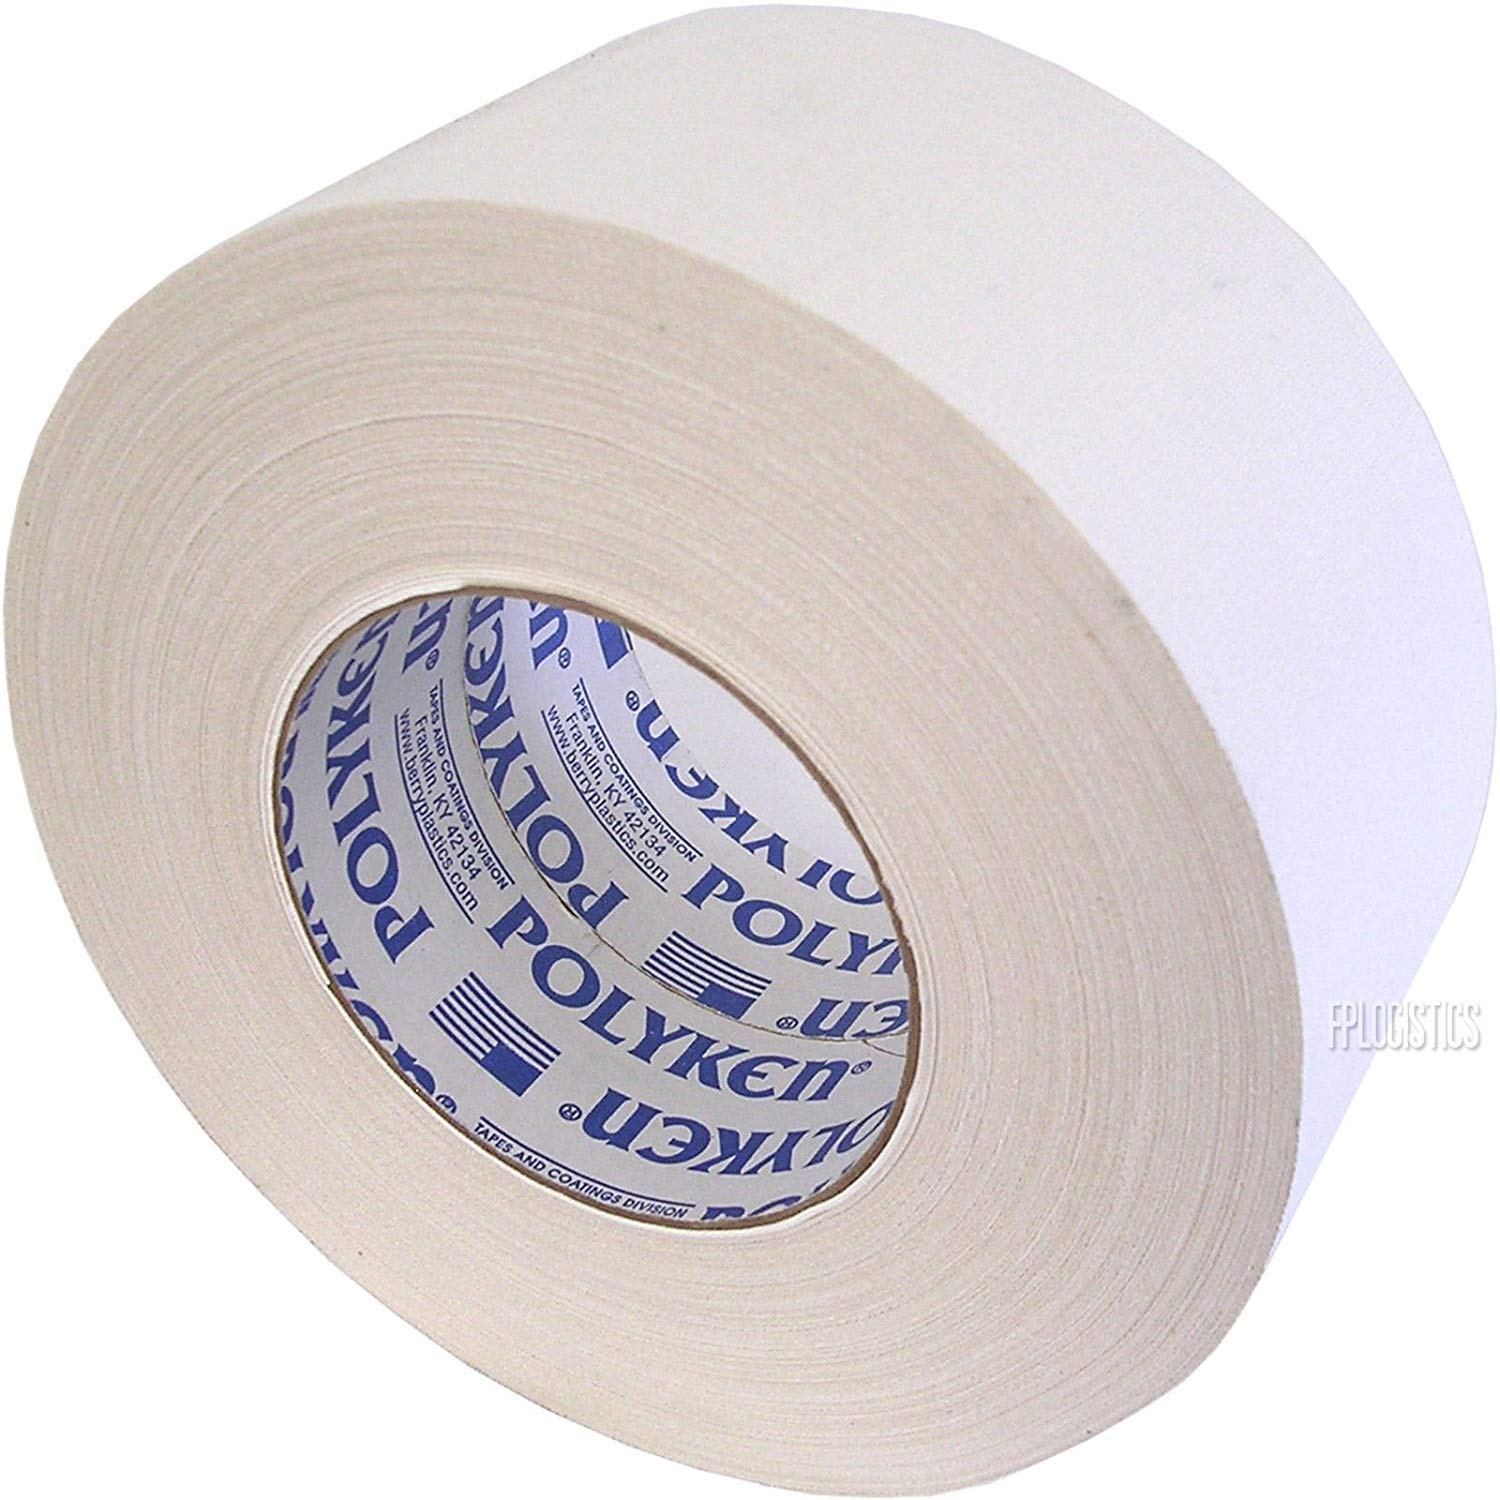 Seforim and Book Binding Specials - Polyken - 4 Rolls Total of White 2-inch Wide Book Binding Tape by Polyken